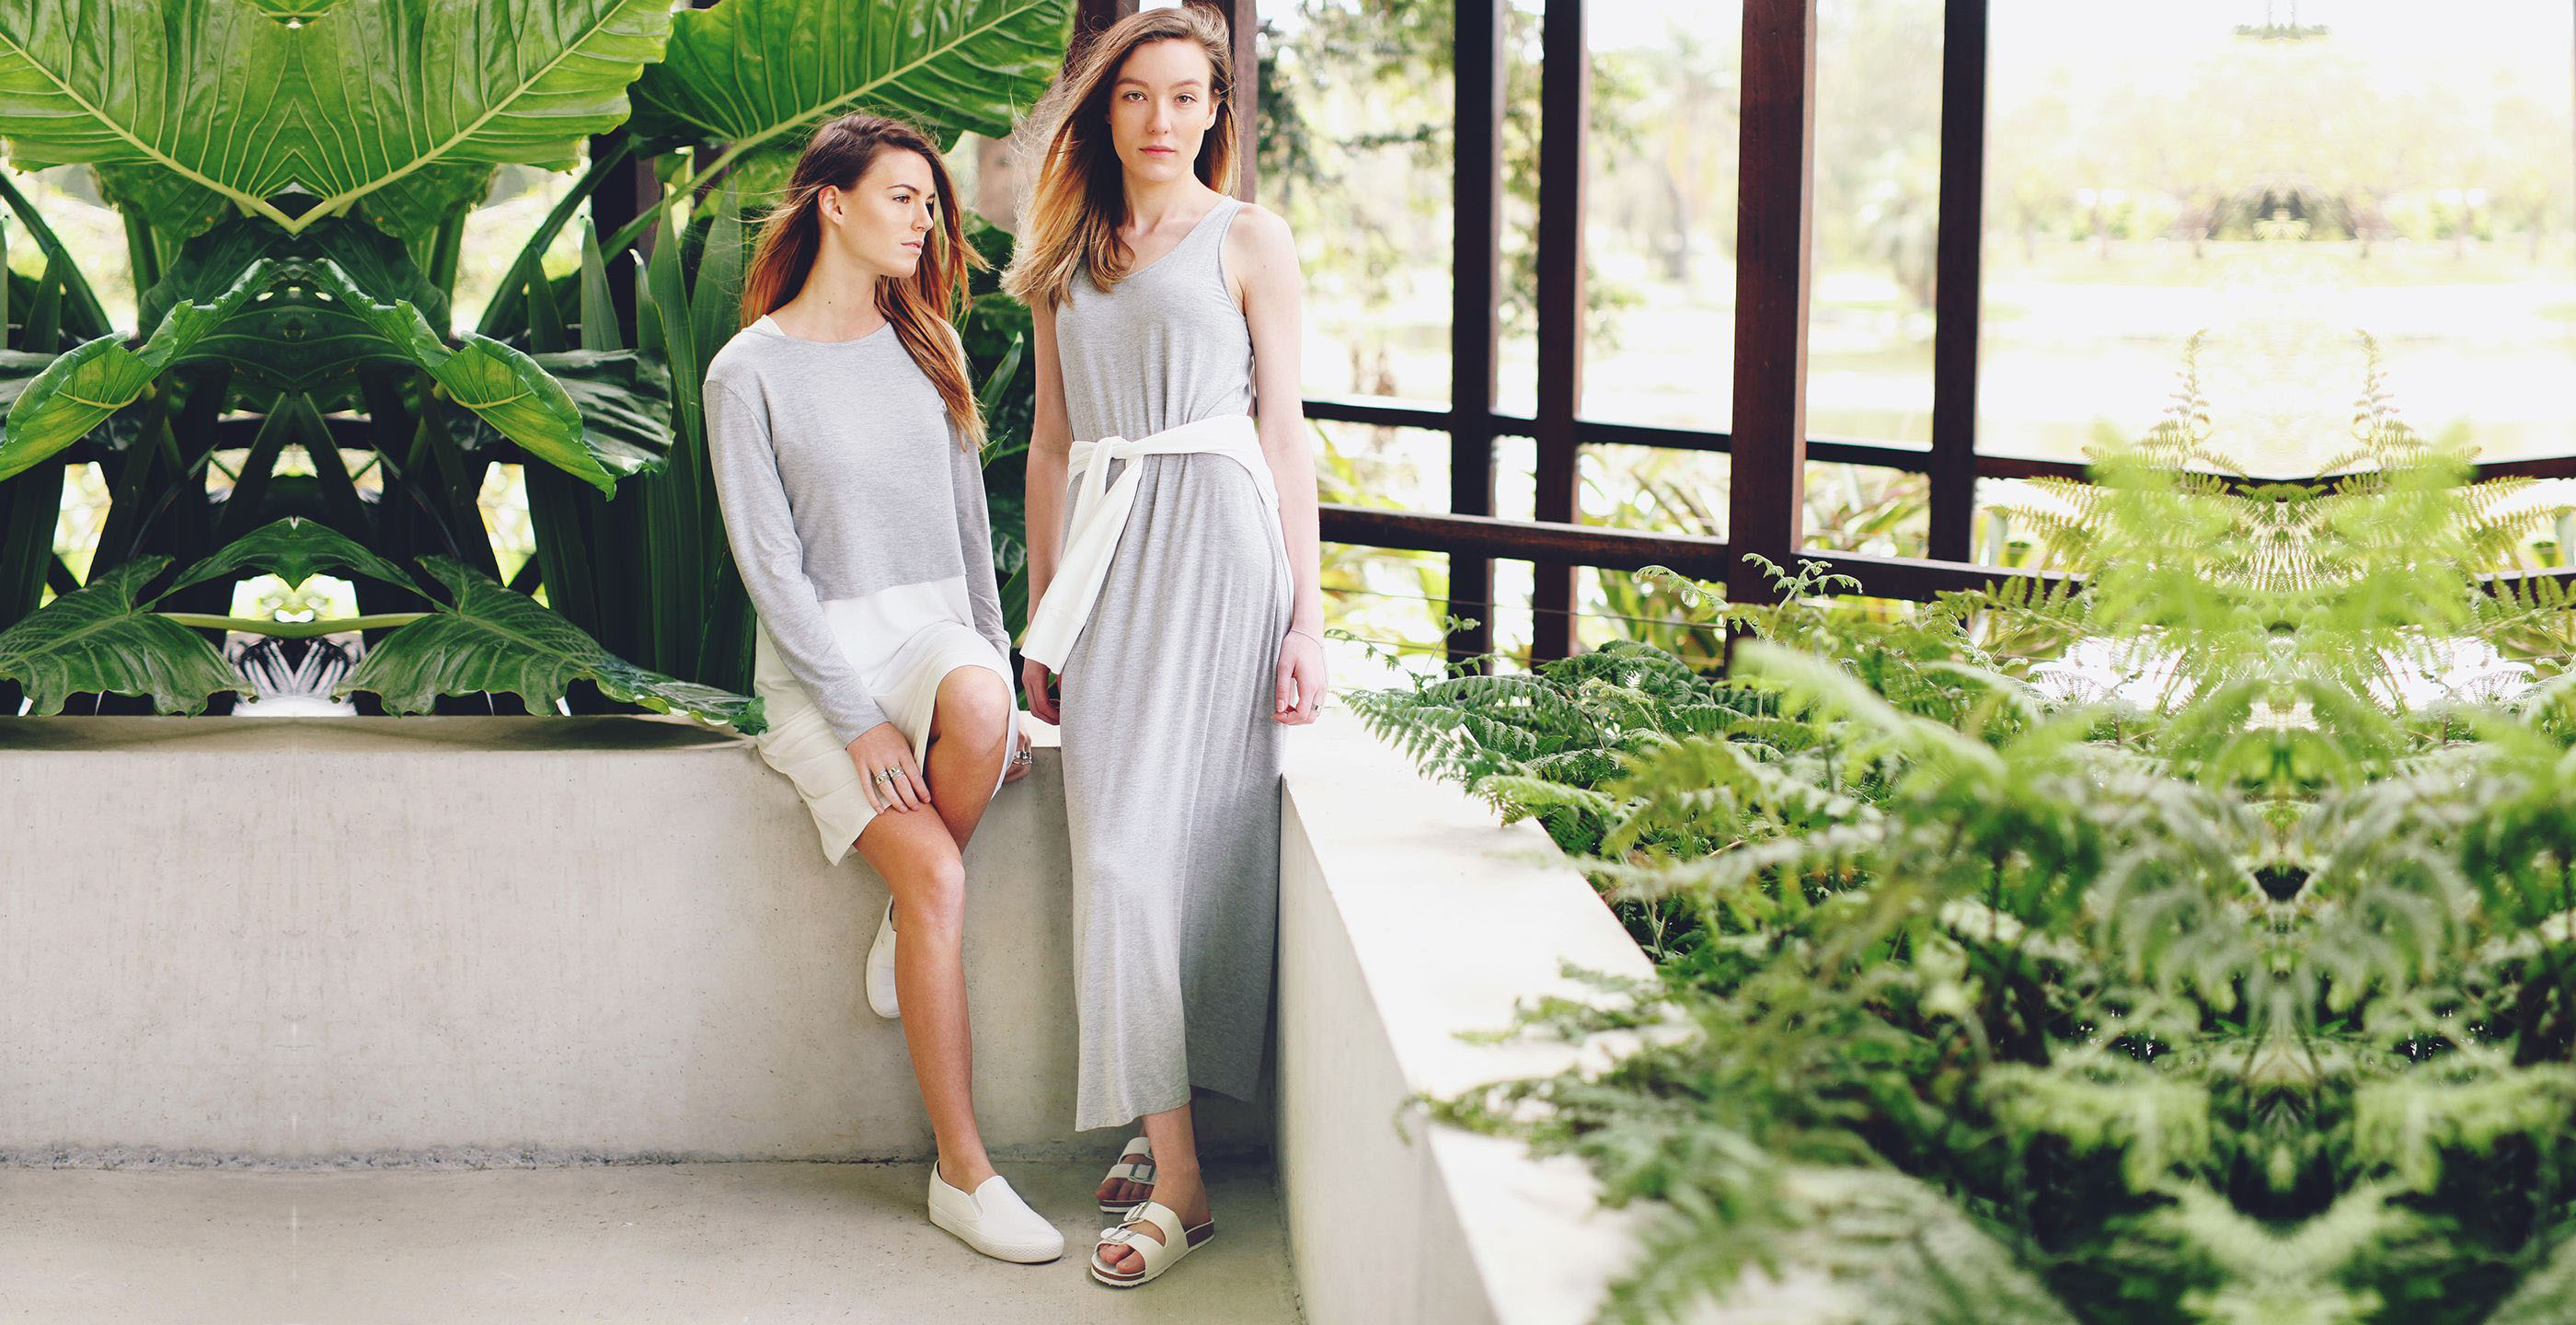 Bamboo Clothing Eco Firendly Womens Fashion Maxi Dress Grey The Great Beyond